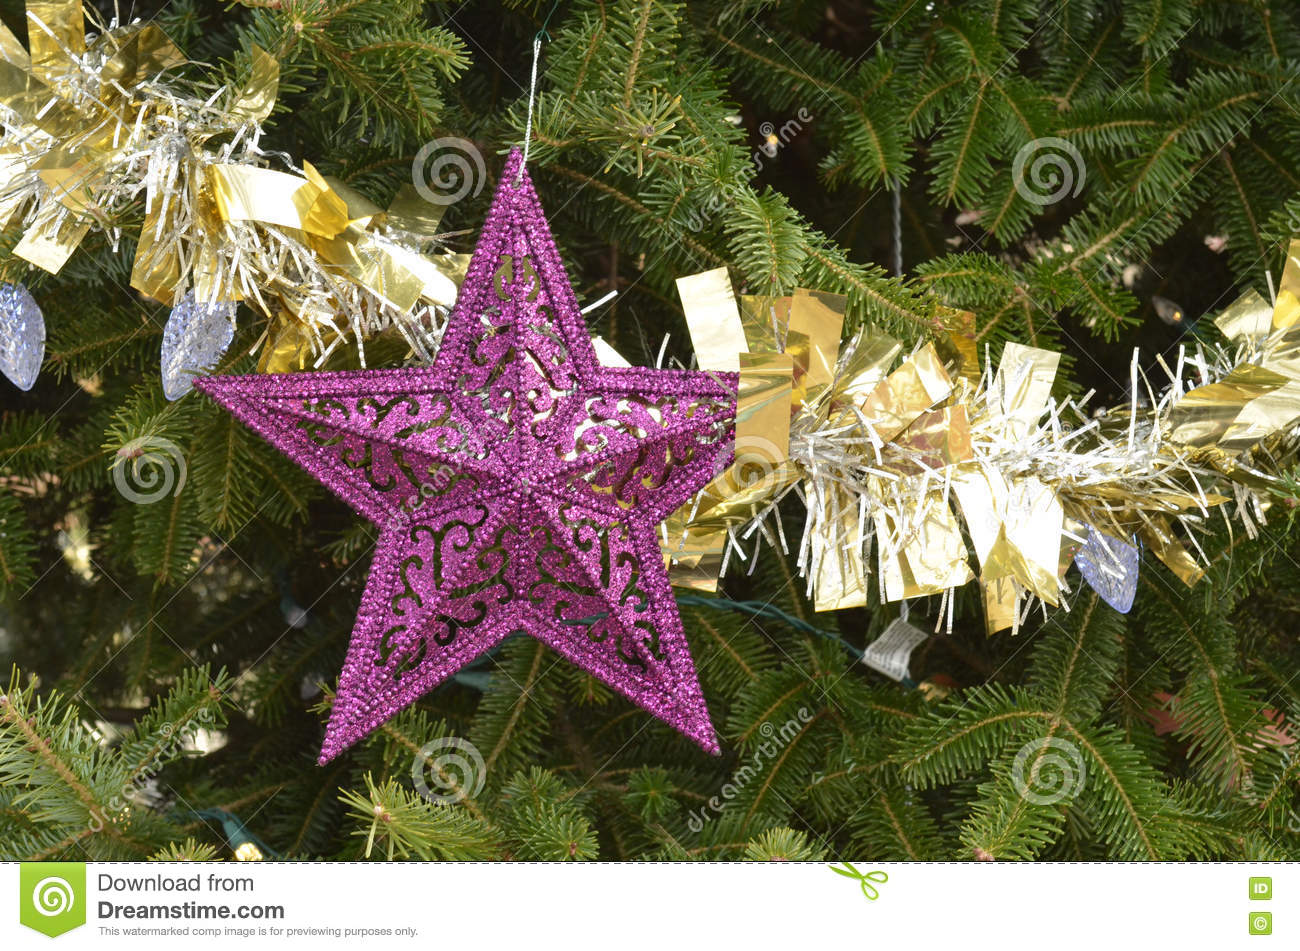 download purple star christmas ornaments gold silver tinsel garland stock image image of decorations